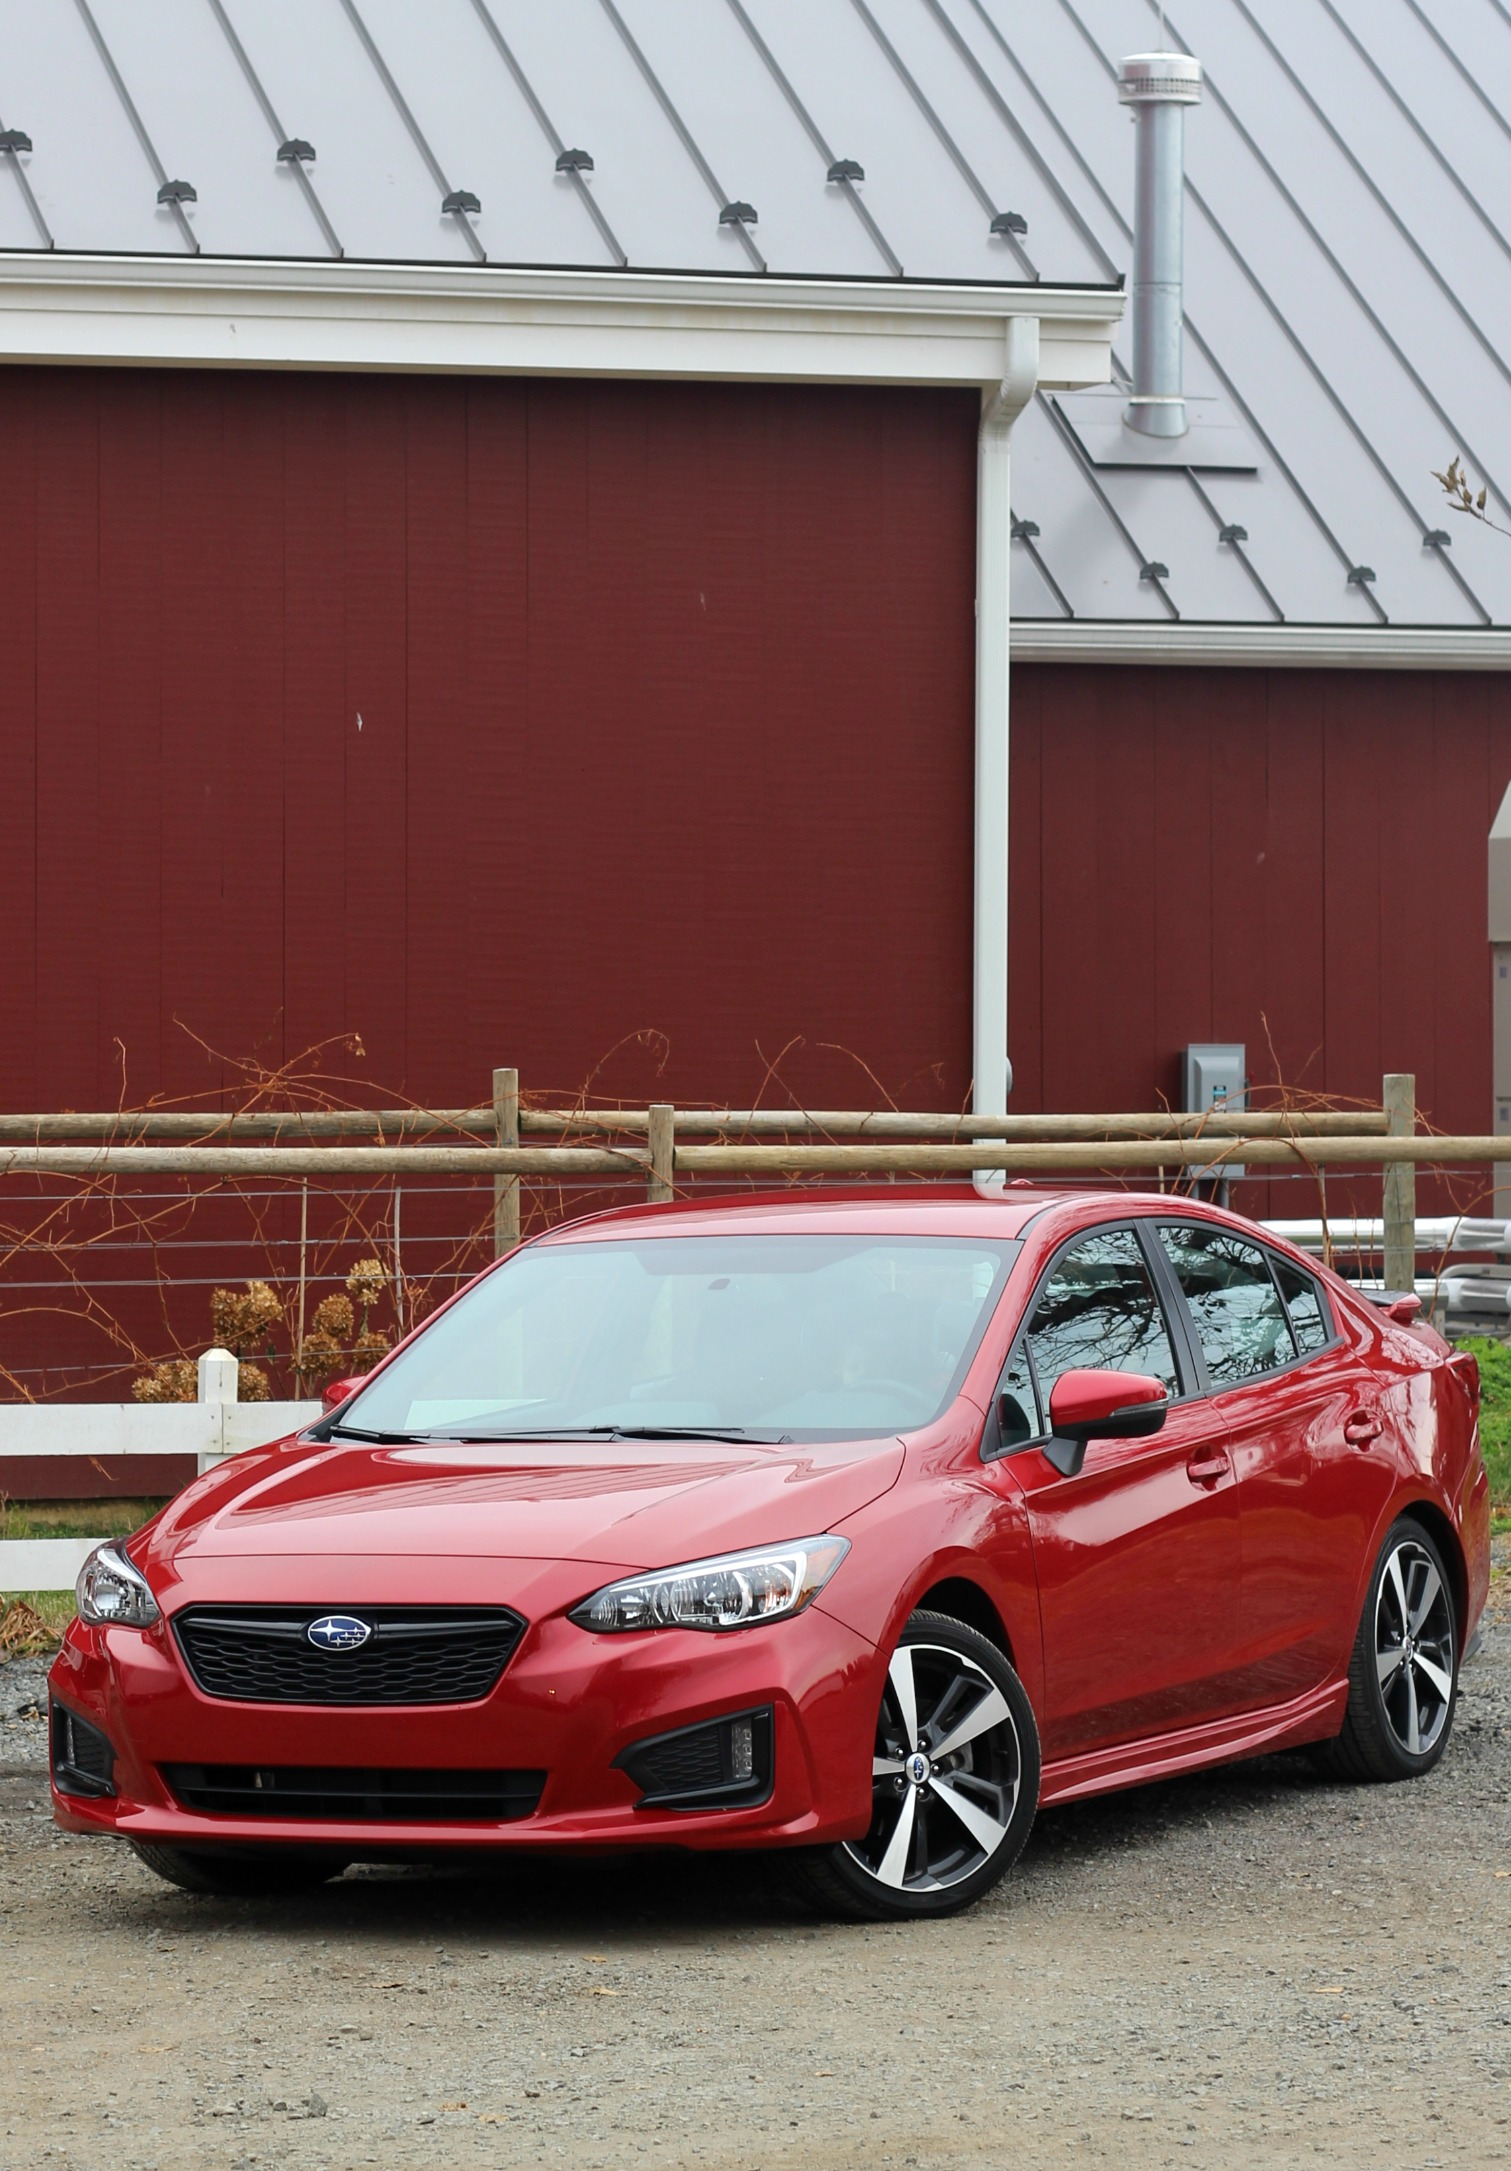 2017red  Subaru Impreza parked next to a barn and wood fence